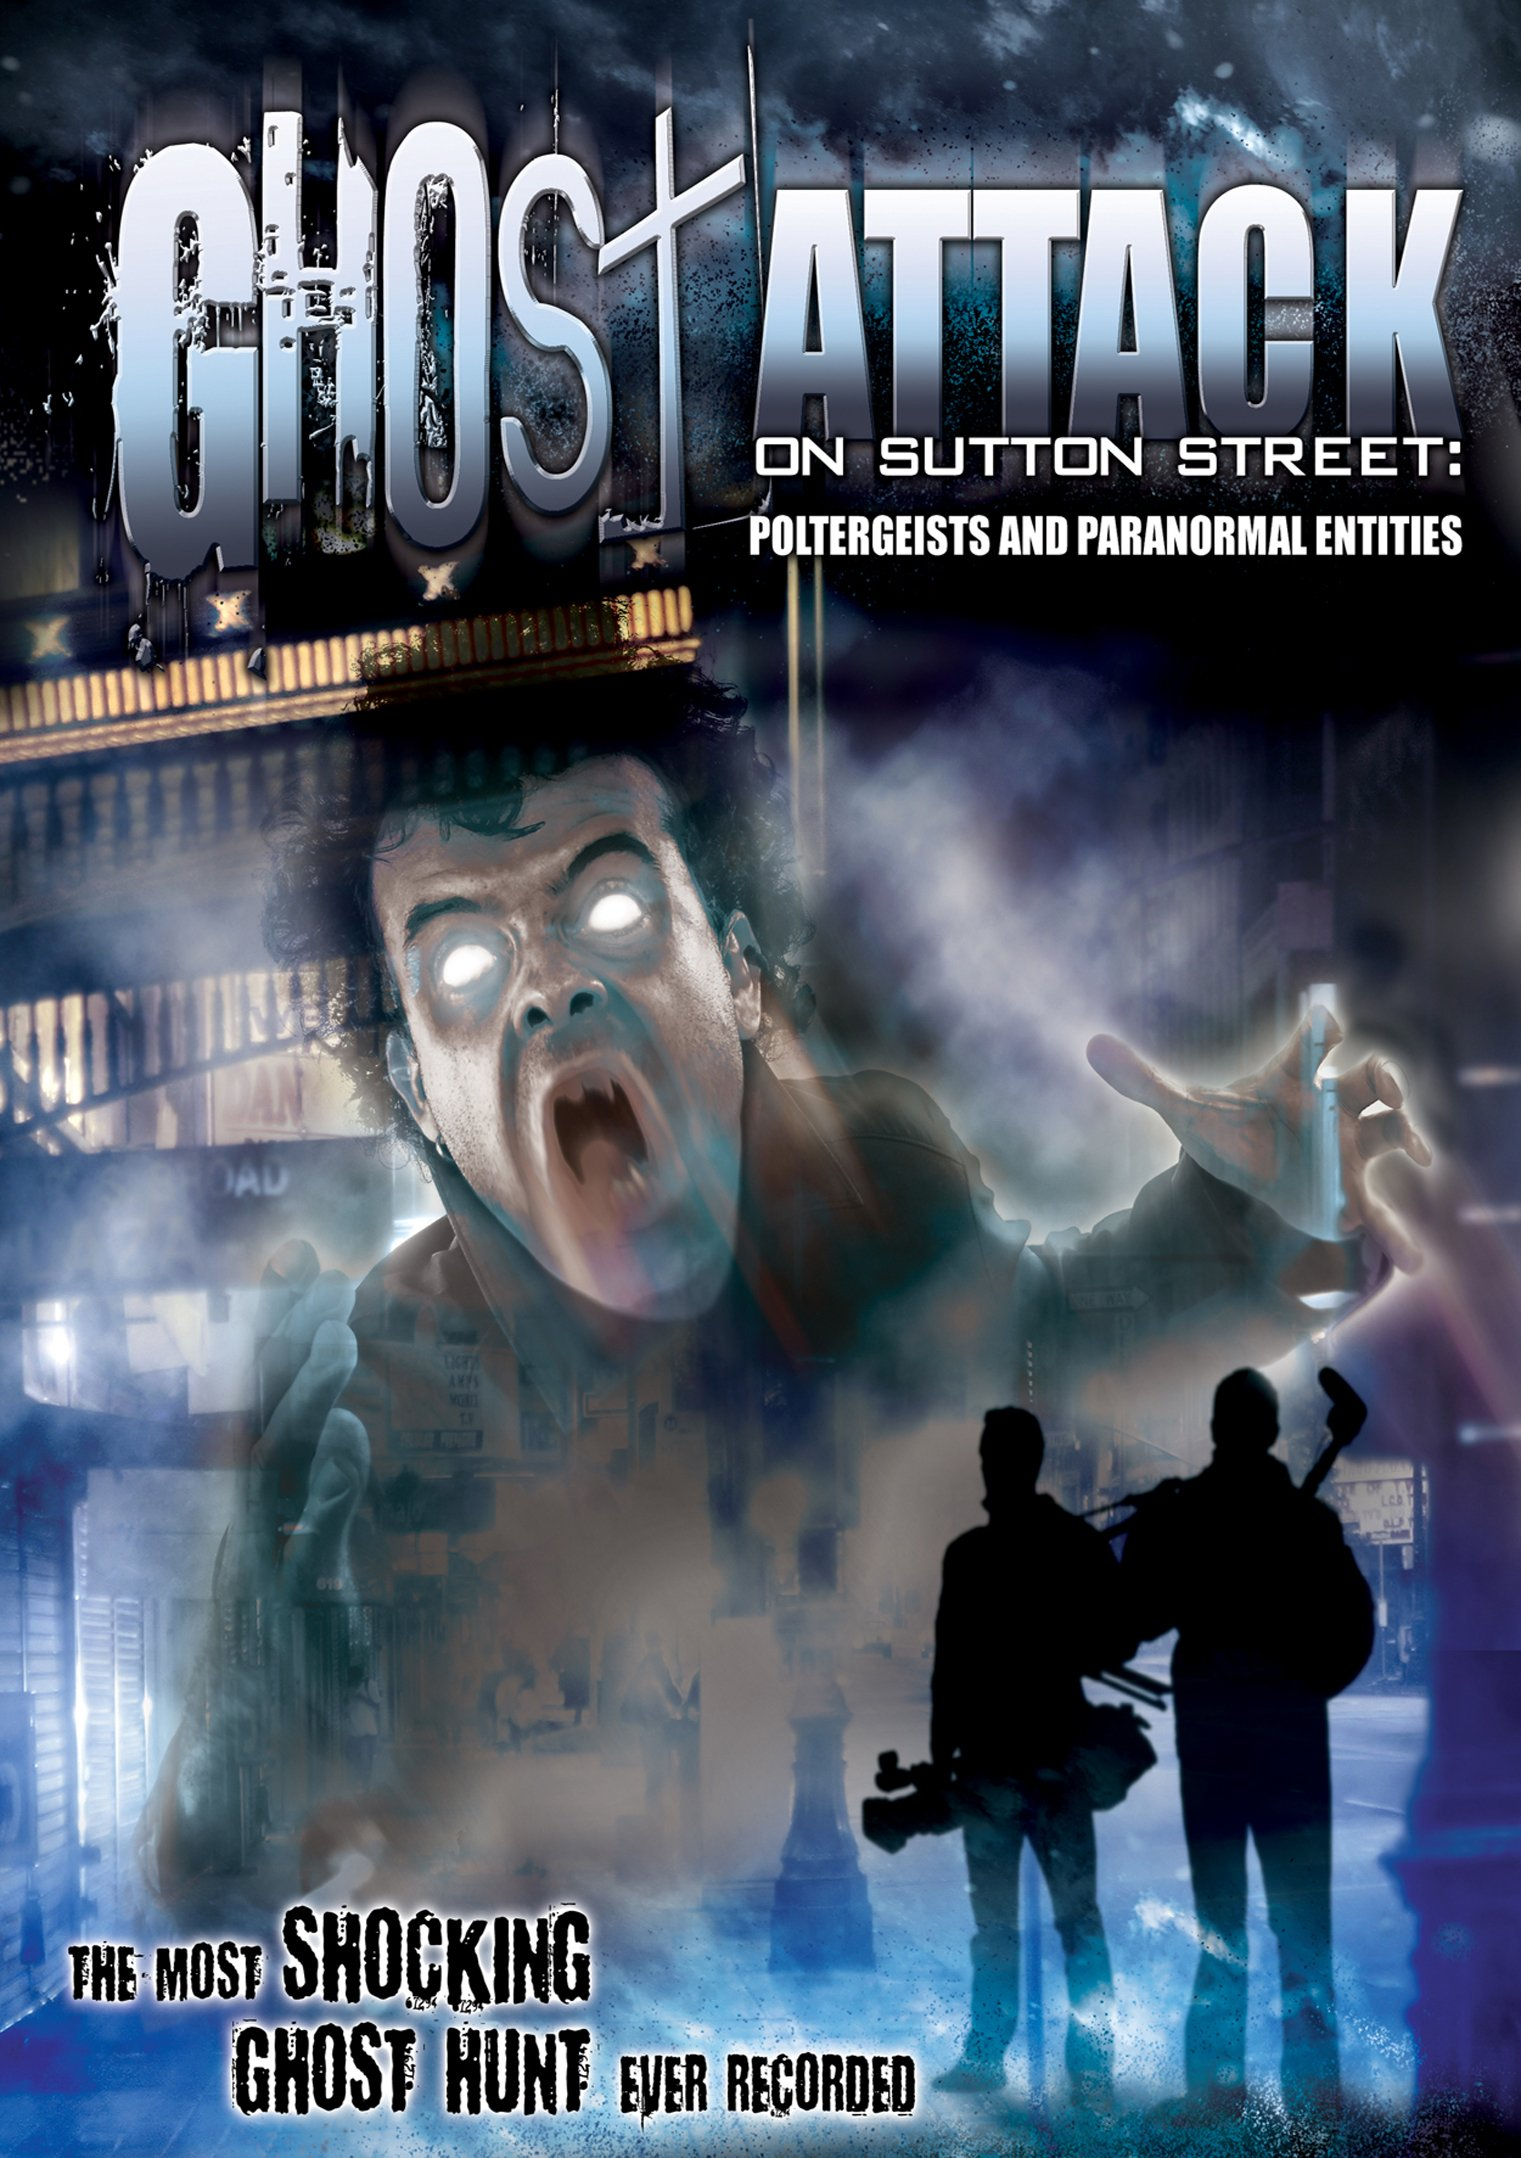 DVD : Mathew Davis - Ghost Attack On Sutton Street: Poltergeists And Paranormal Entities (Amaray Case)